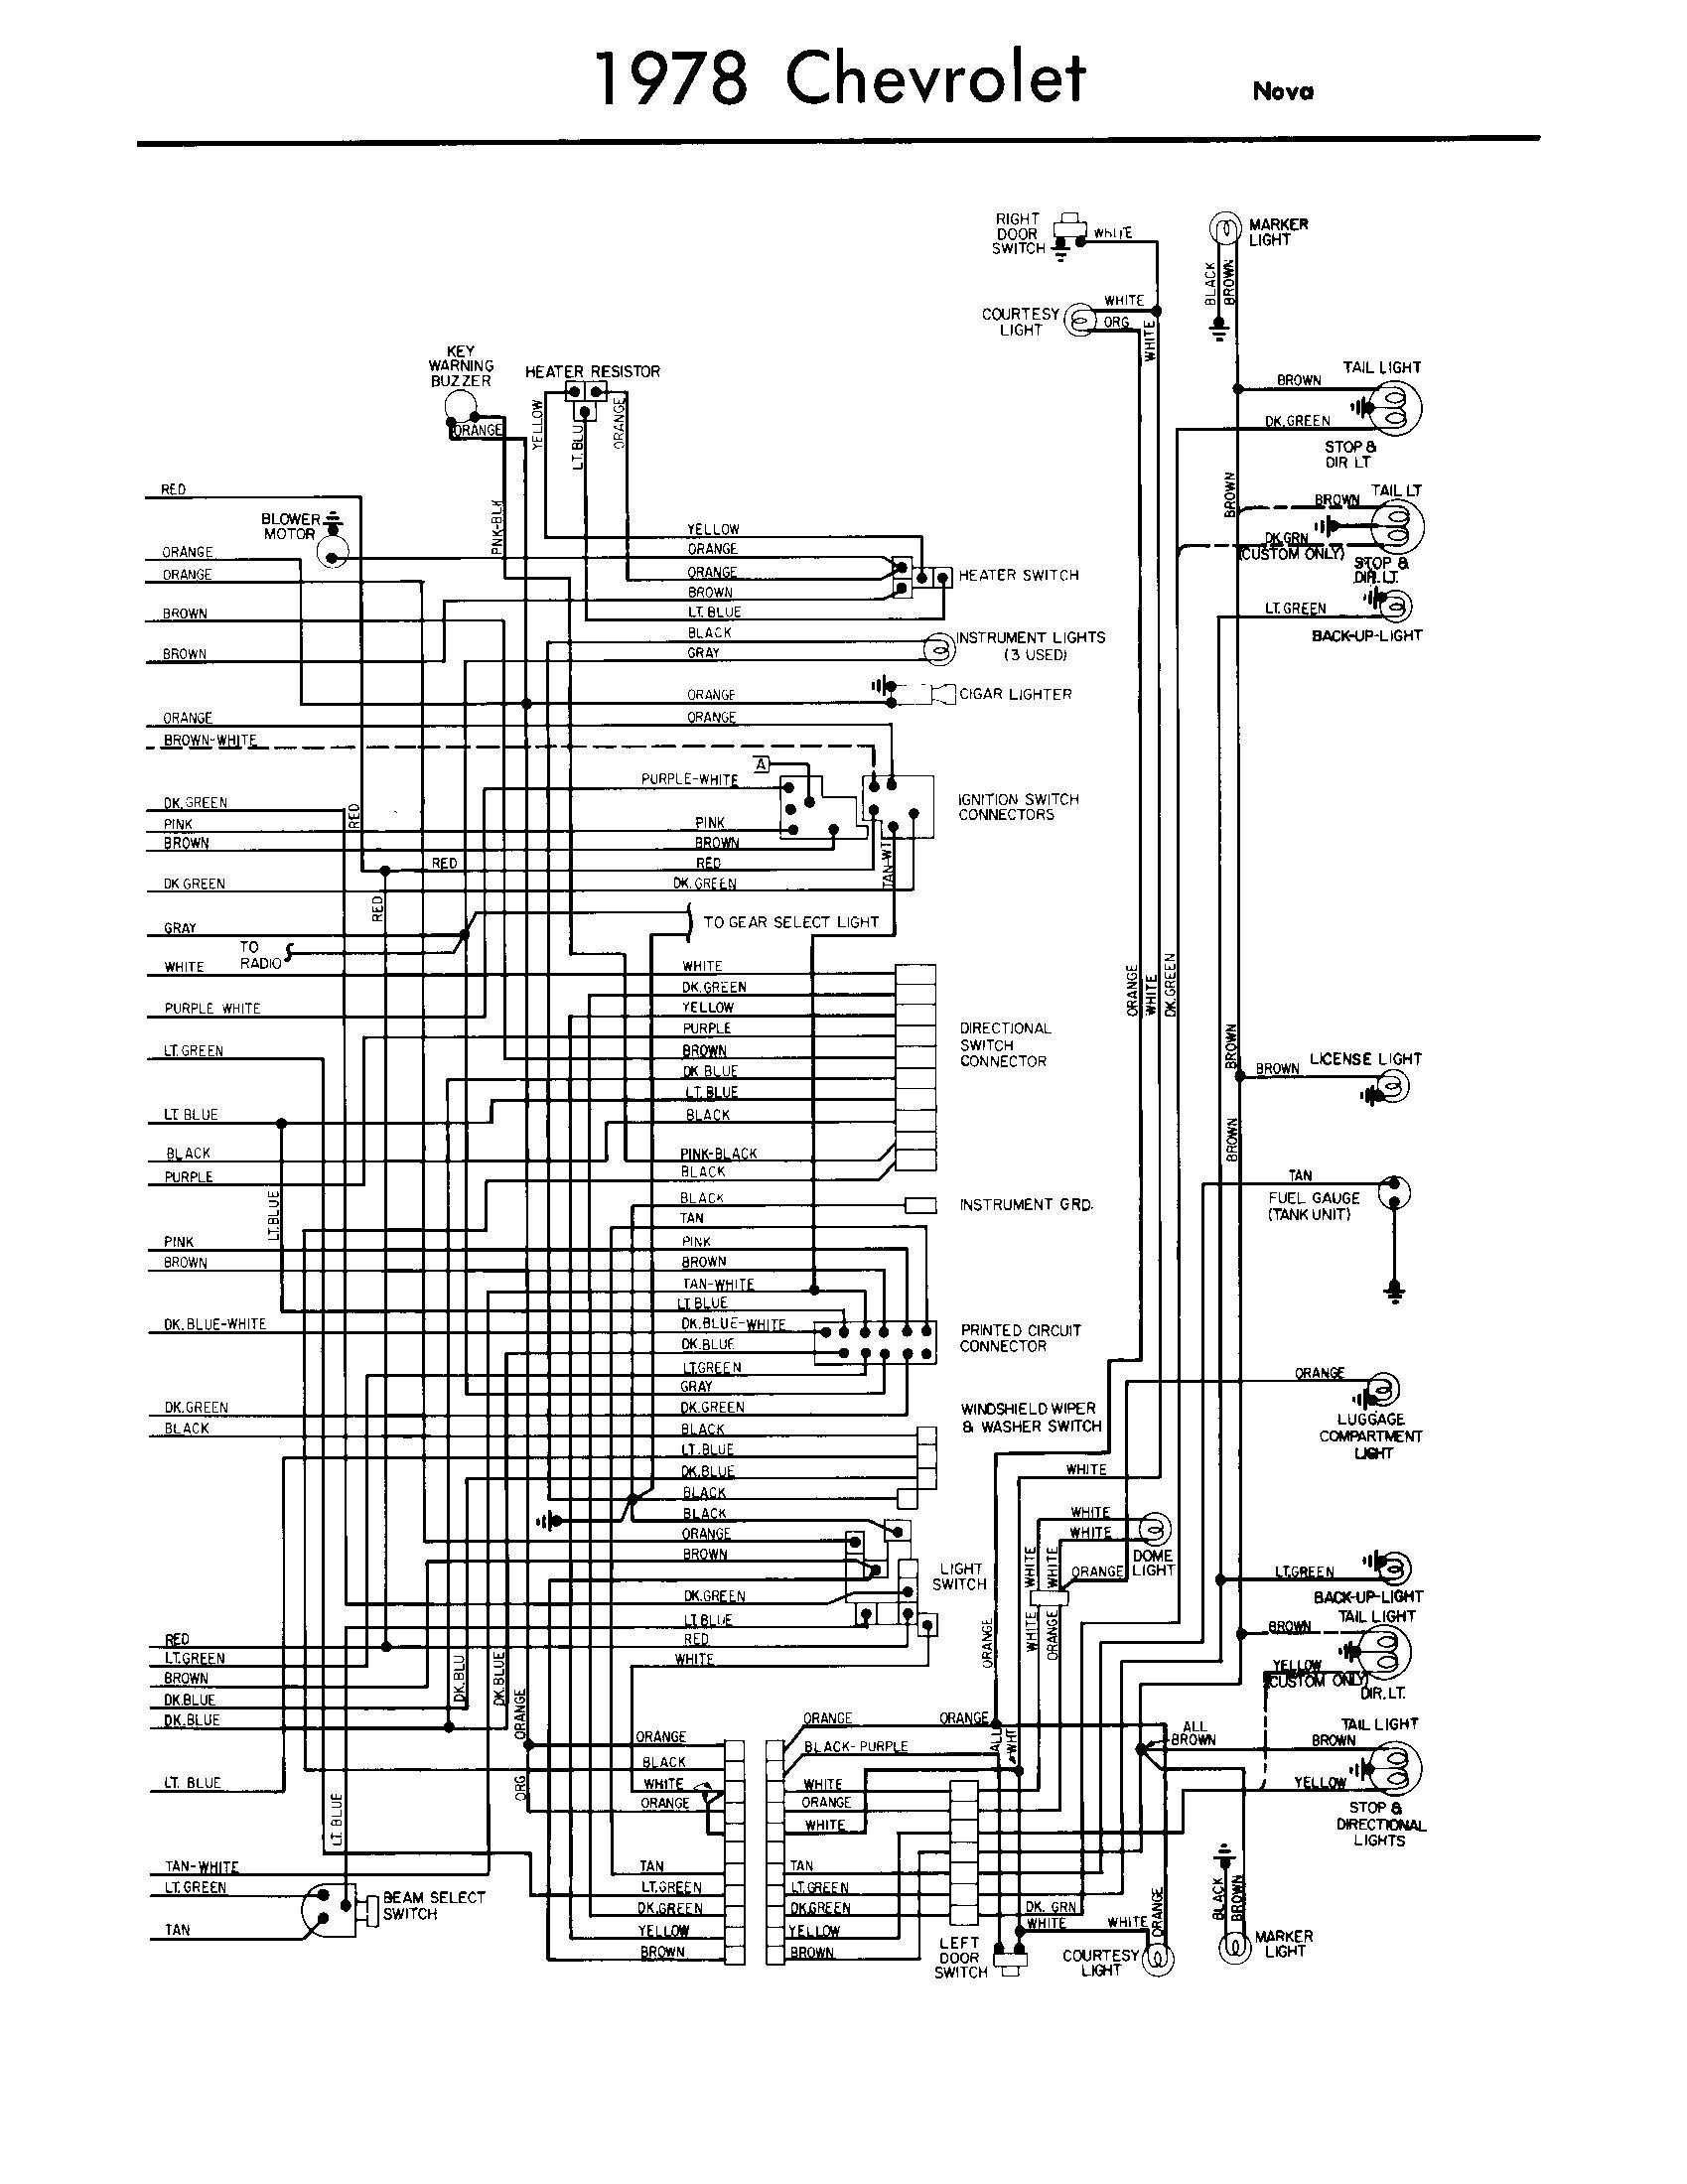 1978 chevy truck wiring diagram 1976 chevy corvette wiring diagram wiring data of 1978 chevy truck wiring diagram 1977 k10 chevy truck fuse block diagram wire center \u2022